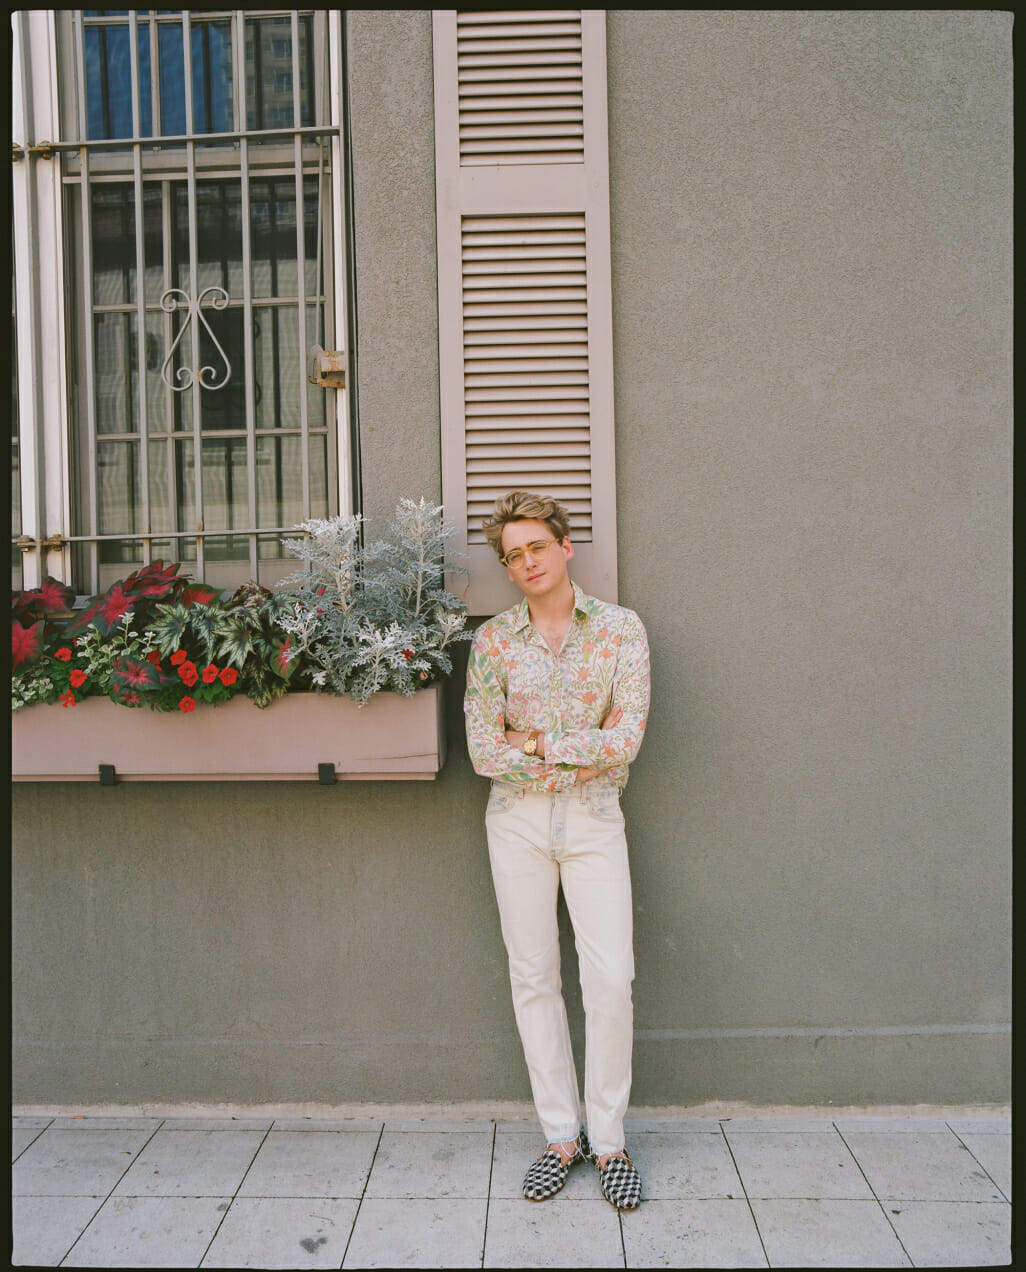 Edith Young photographs Luke Edward Hall in New York City